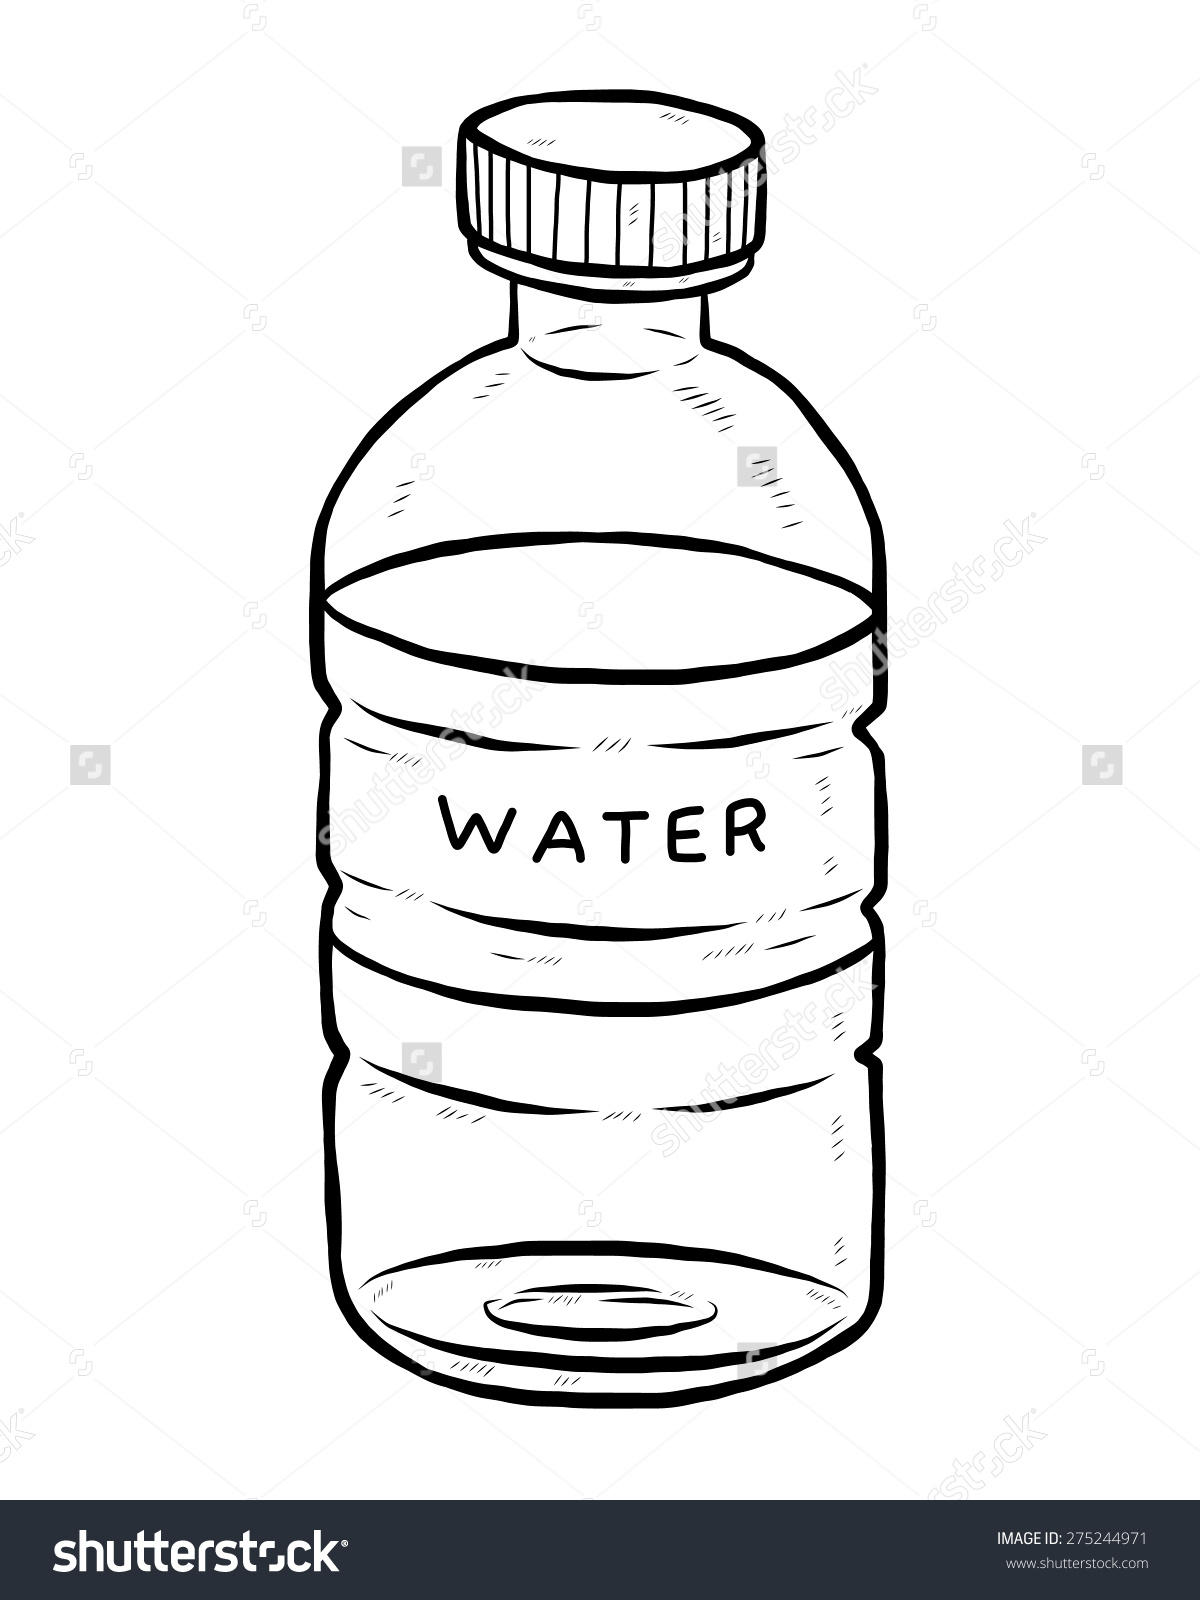 water bottle clipart black white - Clipground